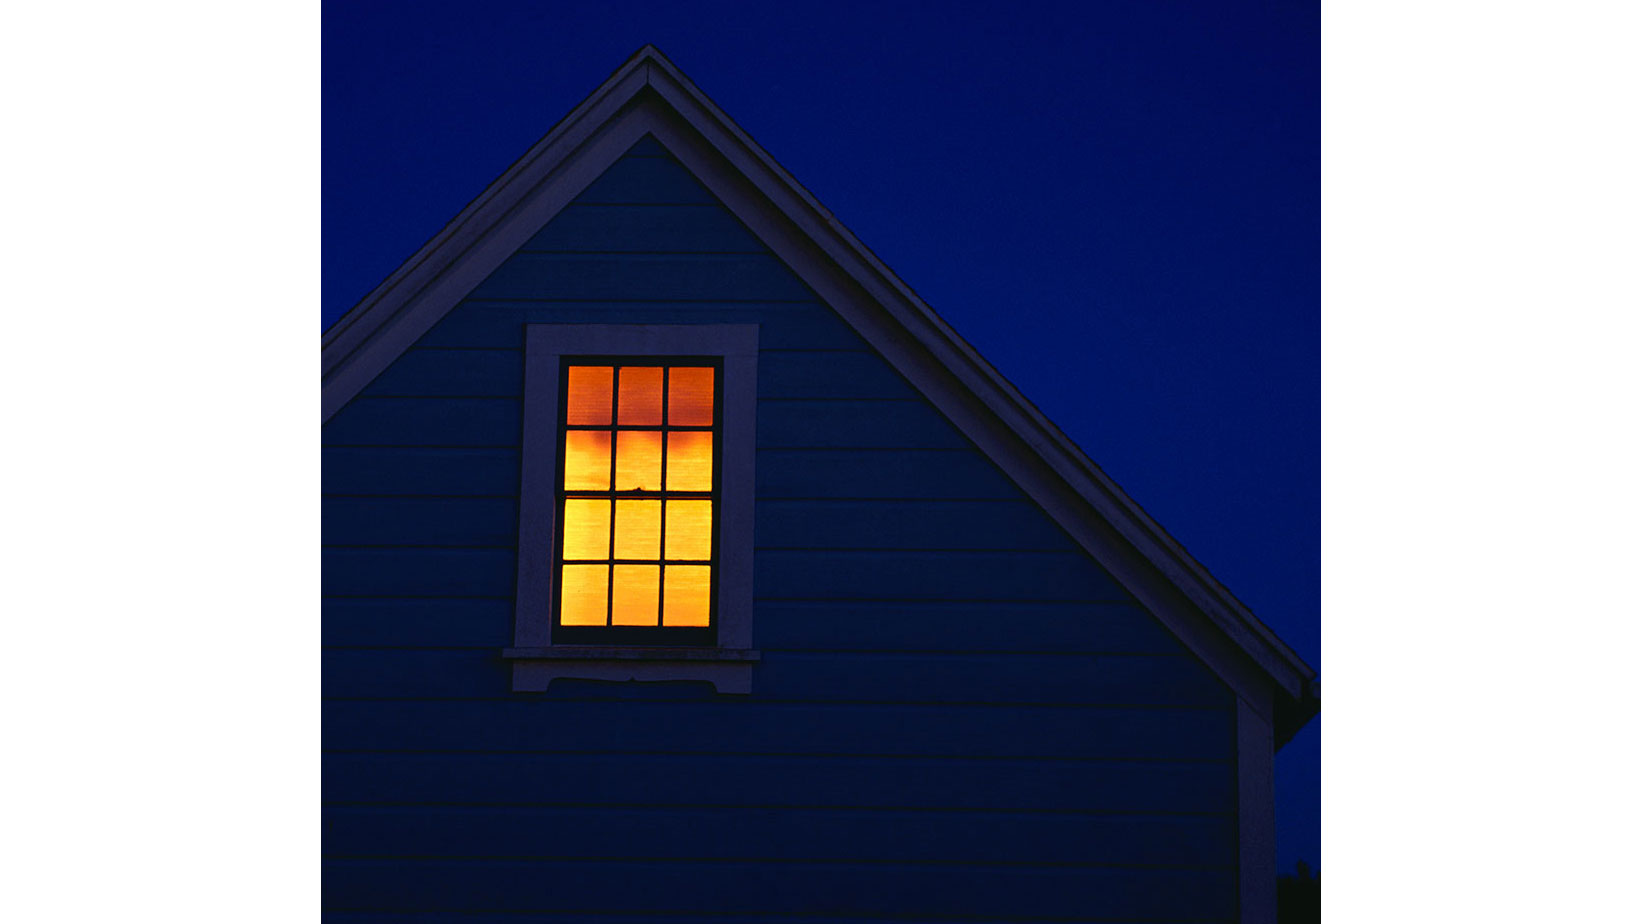 Unoccupied house with lights on at night